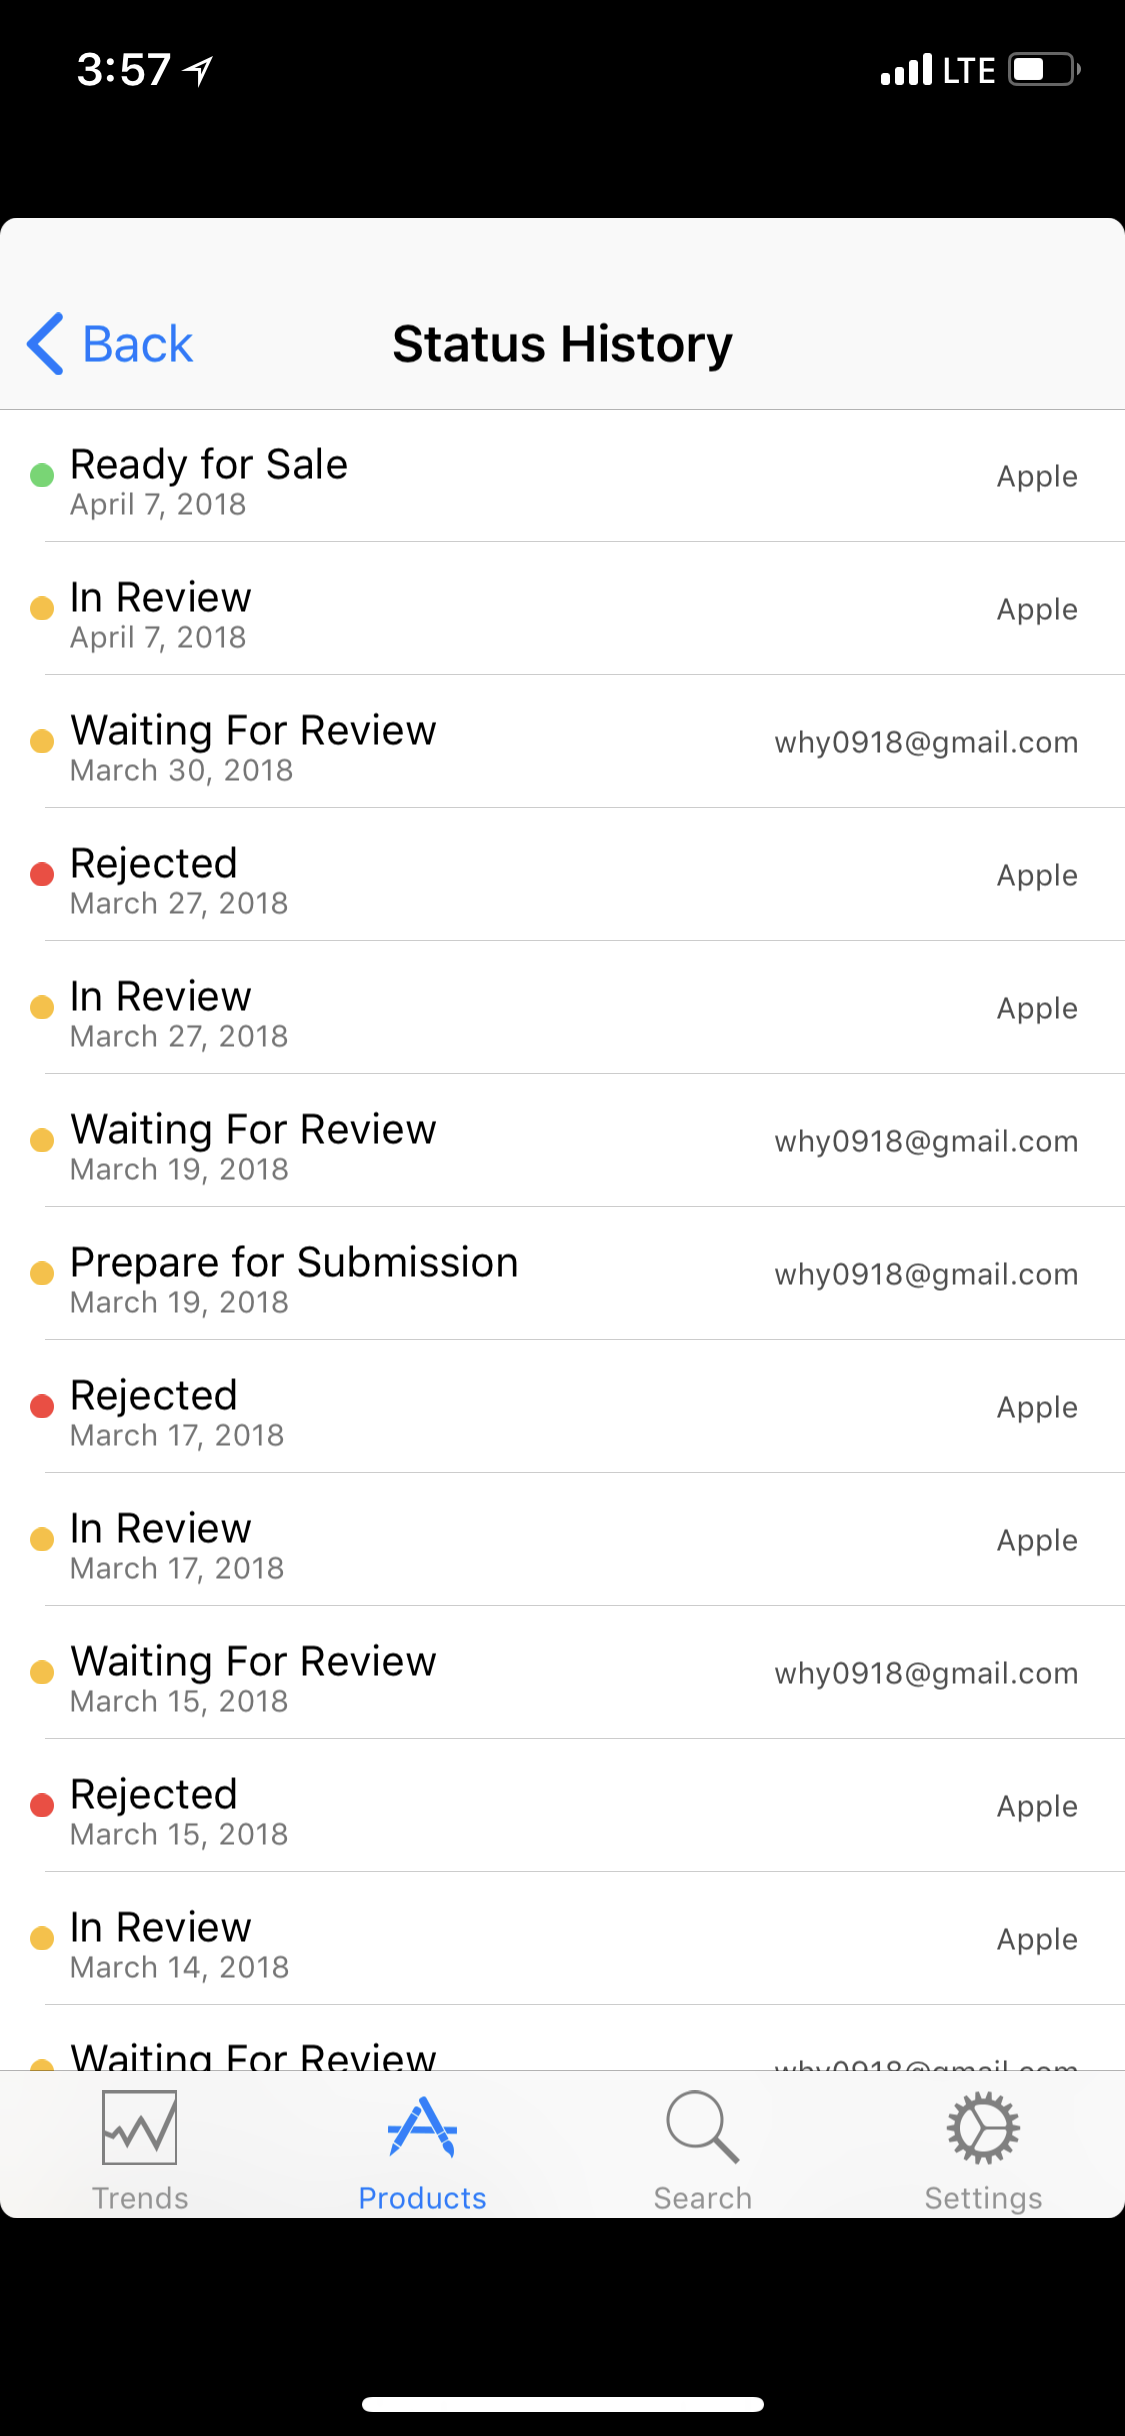 In Review- Rejected- In Review- Rejected